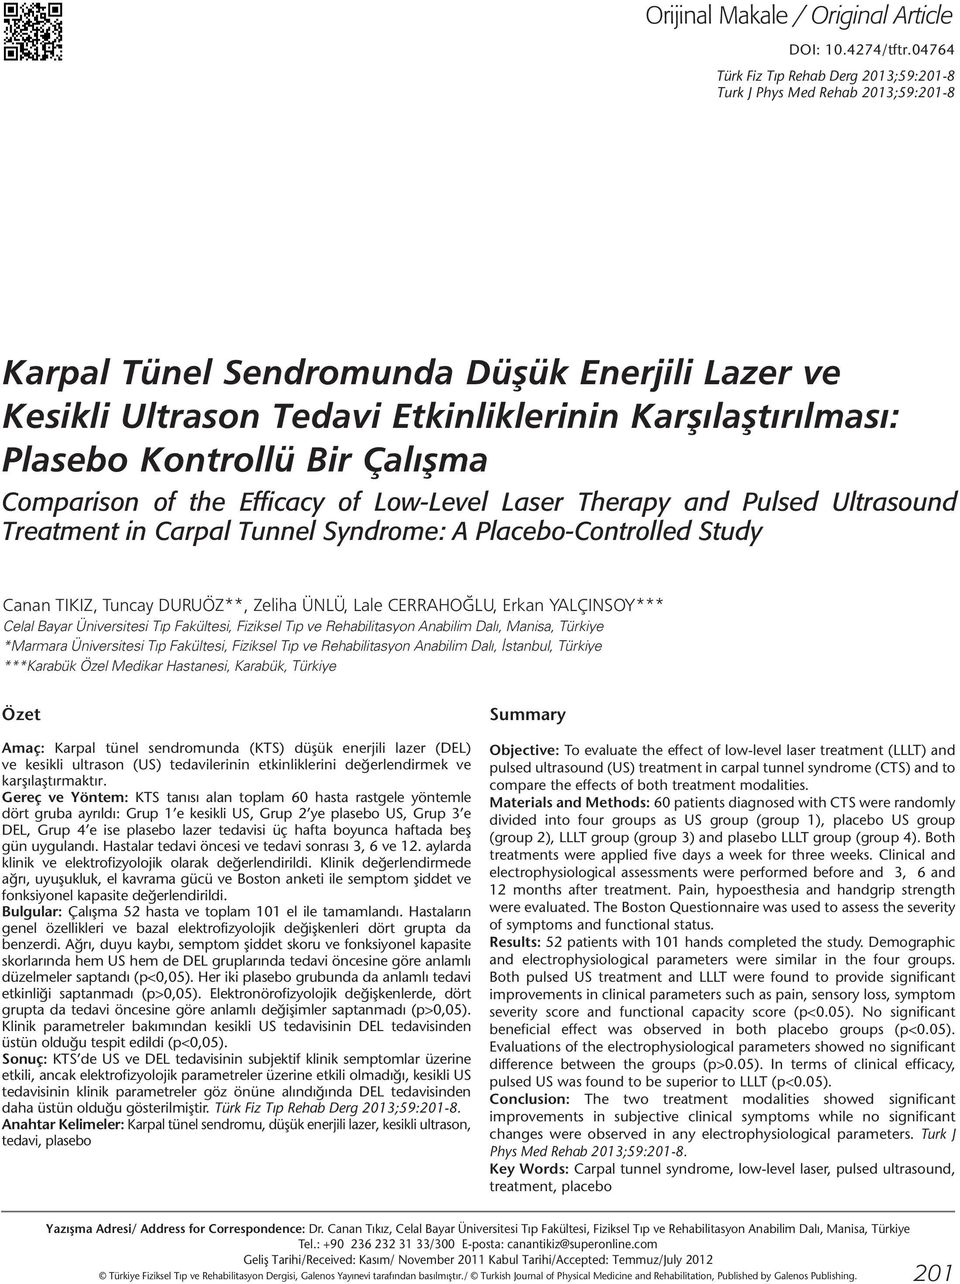 Kontrollü Bir Çalışma Comparison of the Efficacy of Low-Level Laser Therapy and Pulsed Ultrasound Treatment in Carpal Tunnel Syndrome: A Placebo-Controlled Study Canan TIKIZ, Tuncay DURUÖZ**, Zeliha